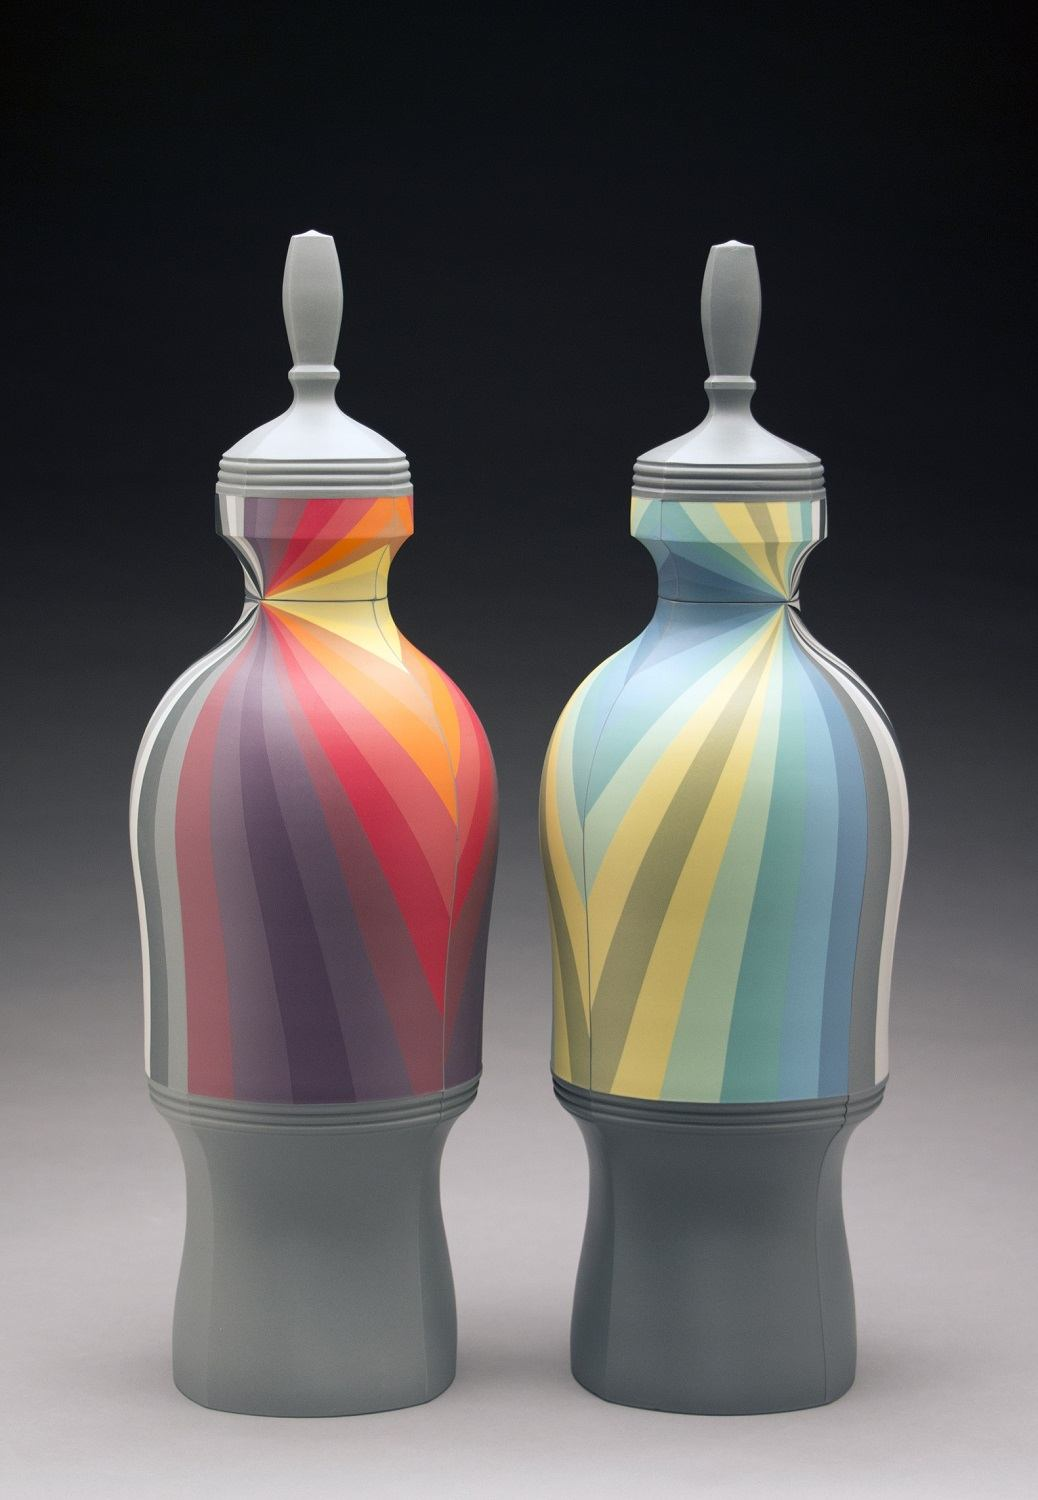 Warm And Cool Containers By Peter Pincus